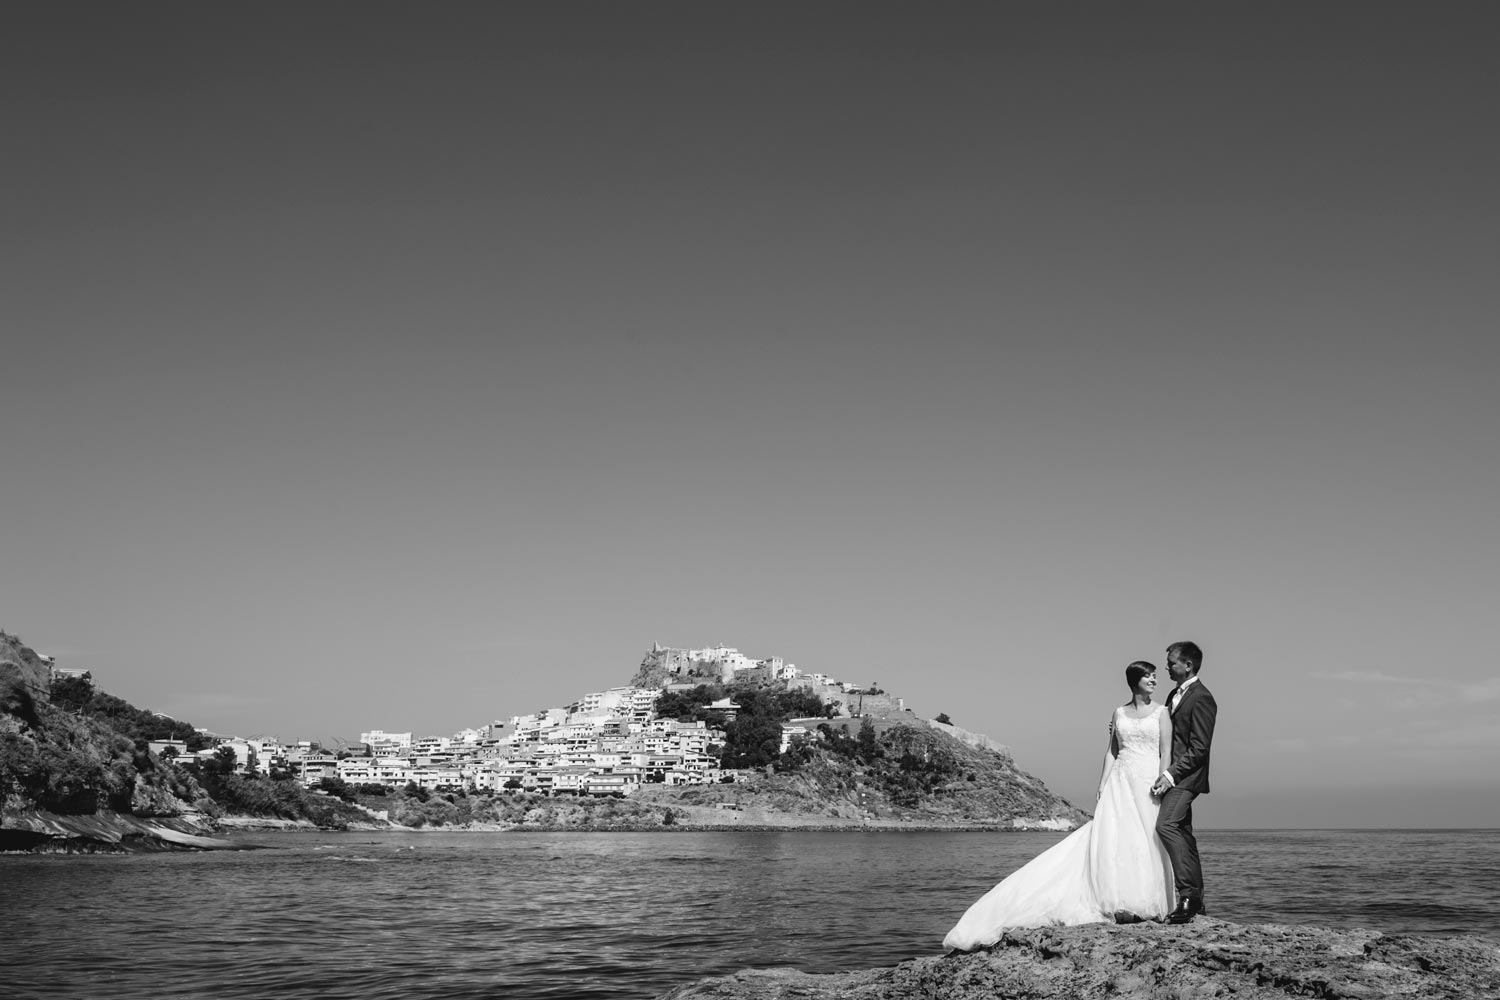 Castelsardo Wedding - Alberto Piroddi Photography